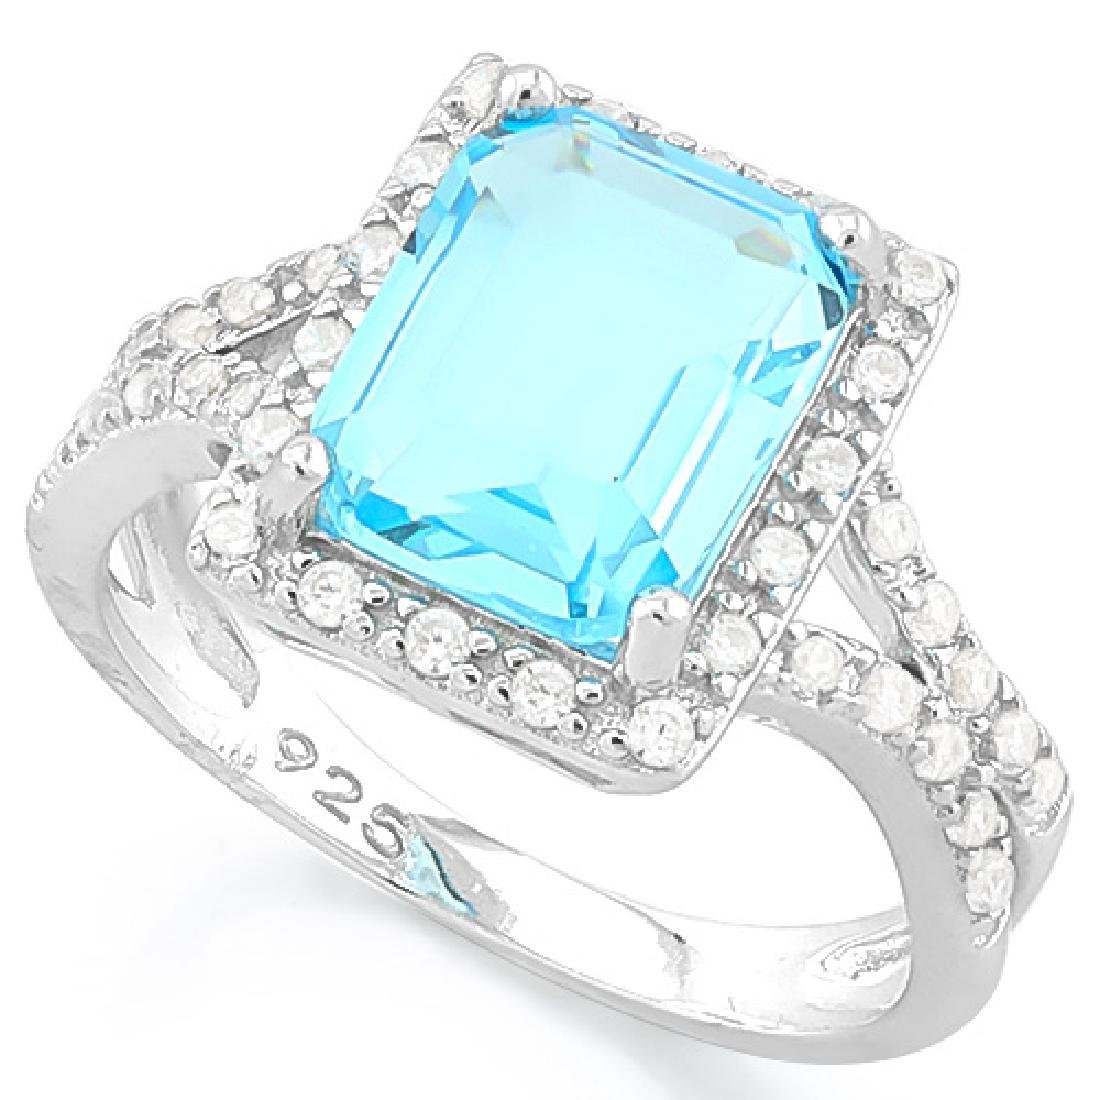 FLAWLESS 3CT EMERALD CUT BLUE TOPAZ STERLING RING